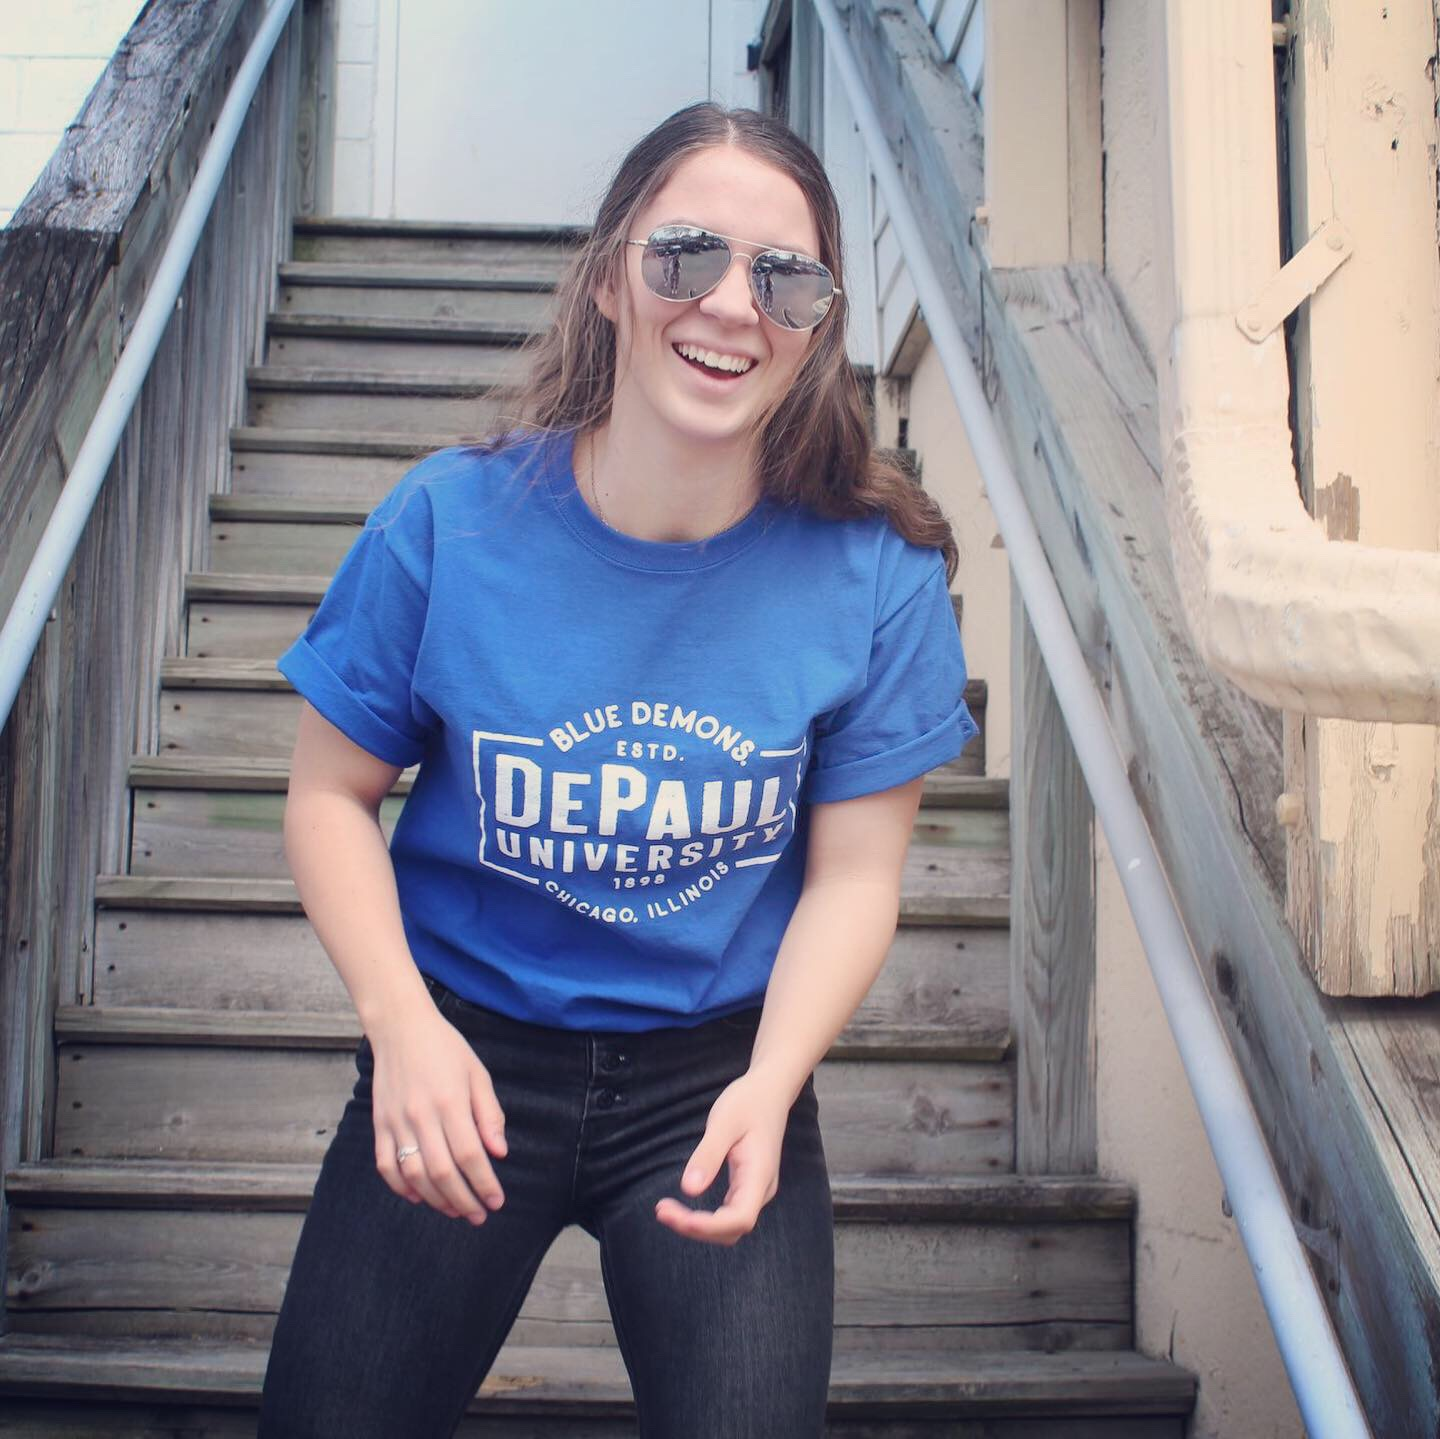 Maggie O'Donnell will be attending DePaul University and will be majoring in Business Administration.